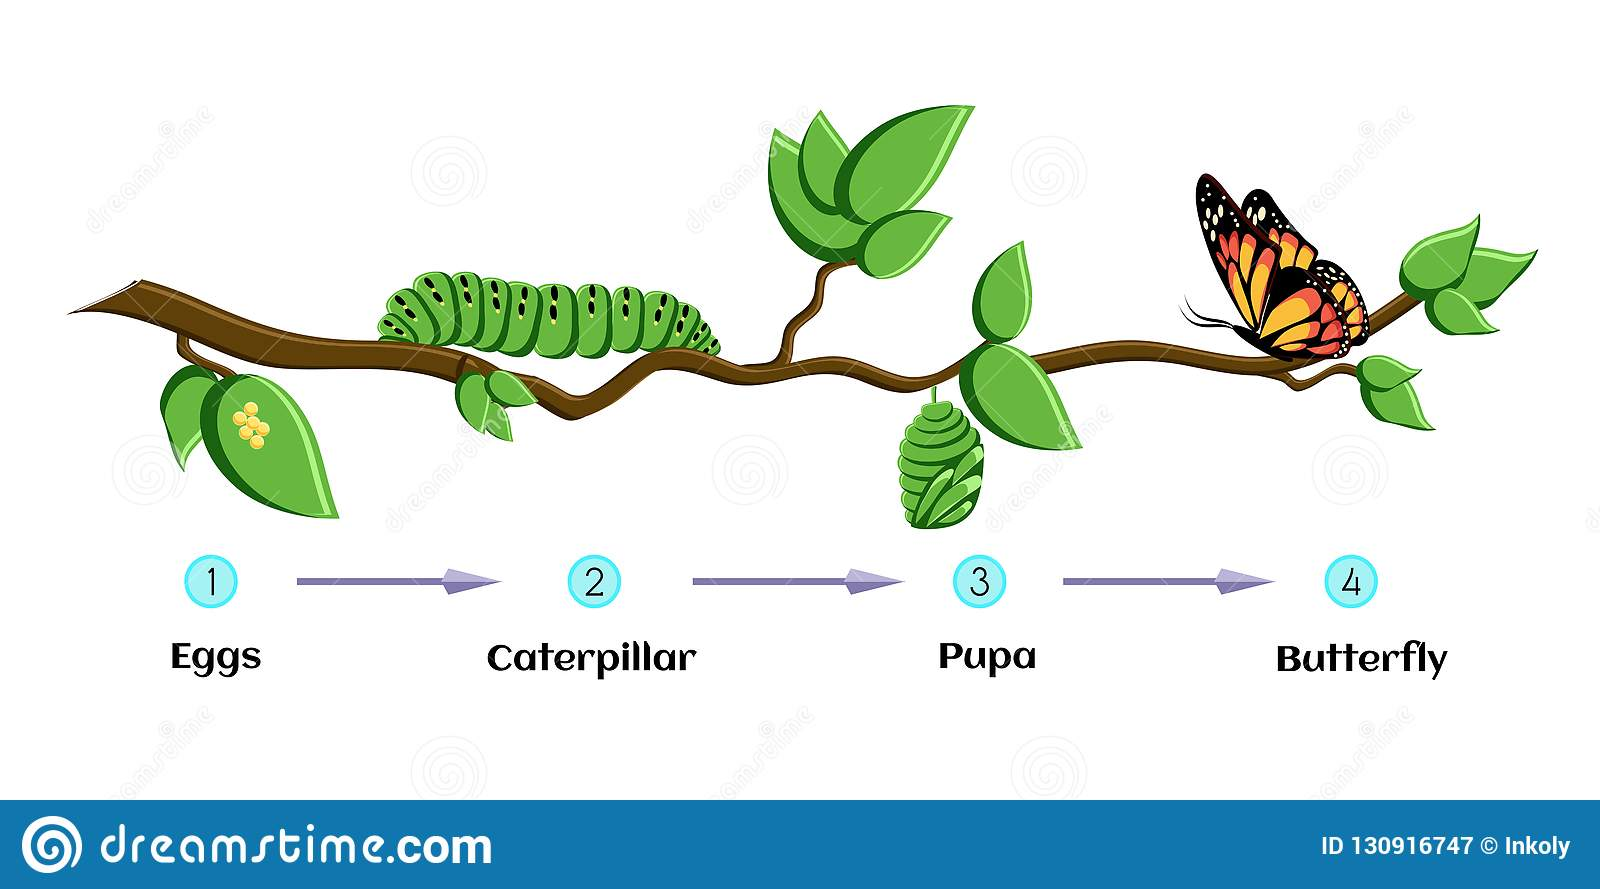 Life Cycle Of Butterfly Eggs Caterpillar Pupa Butterfly